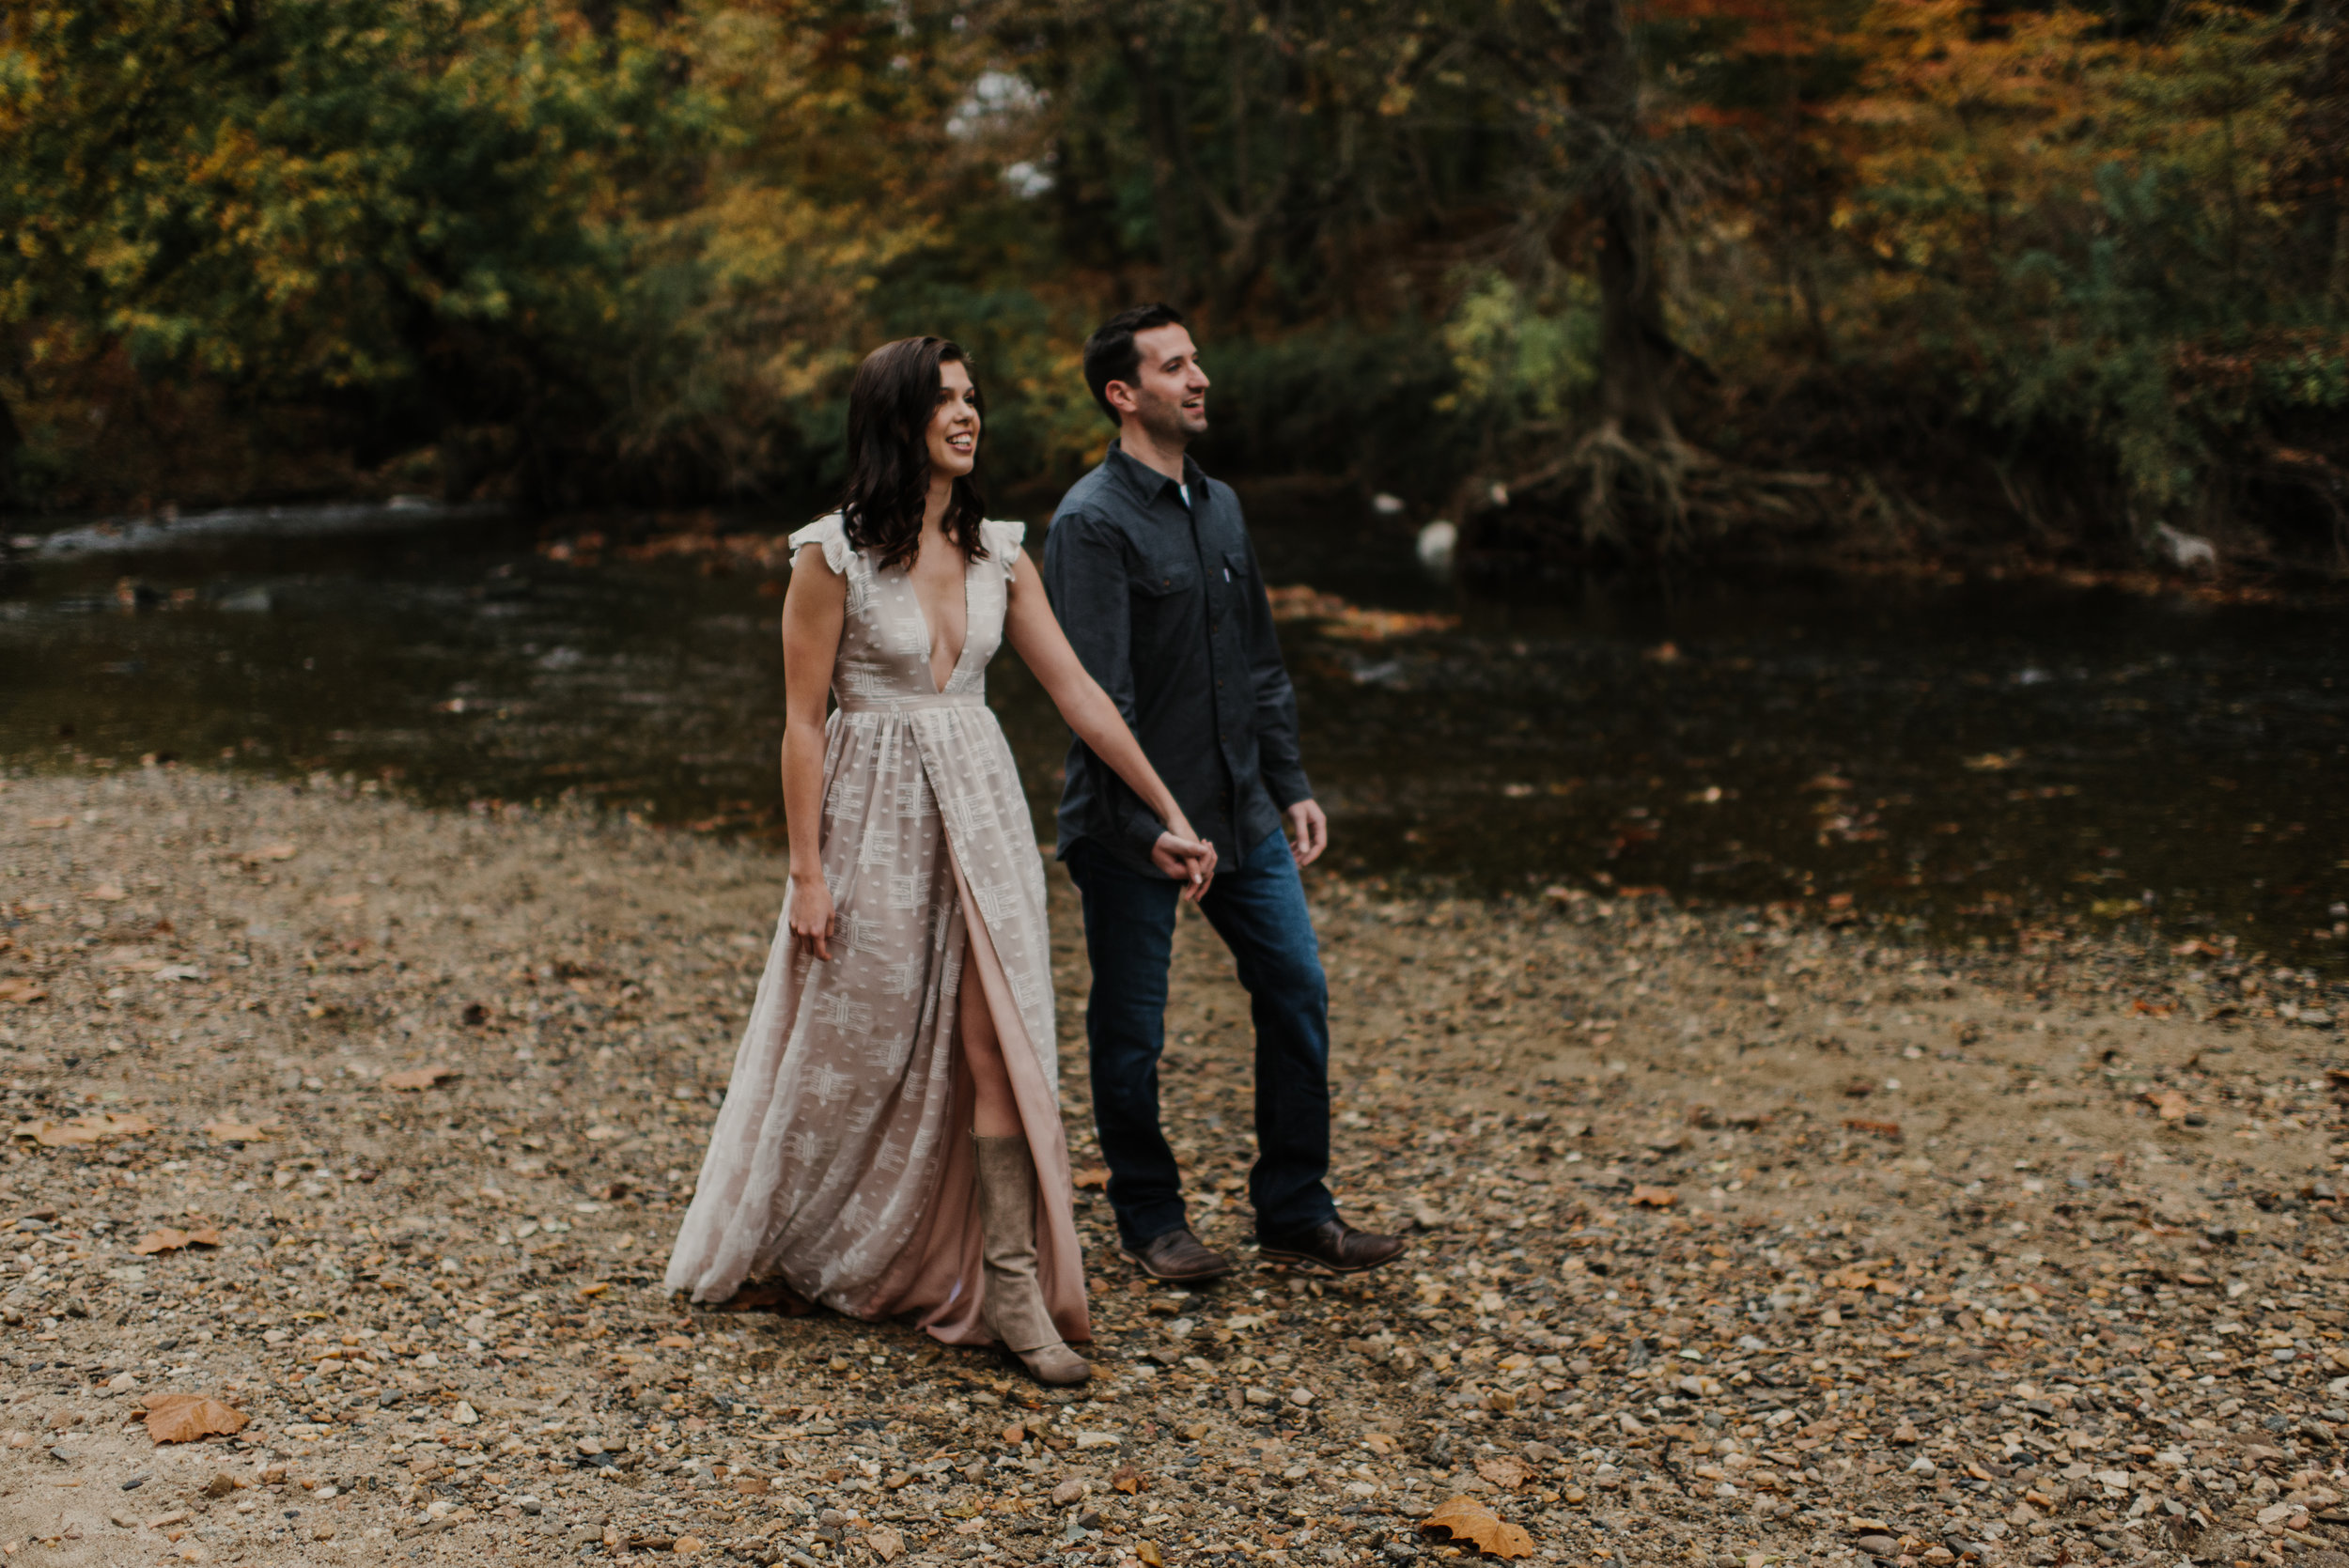 Philadelpia_Elopement_Photographer-9.jpg